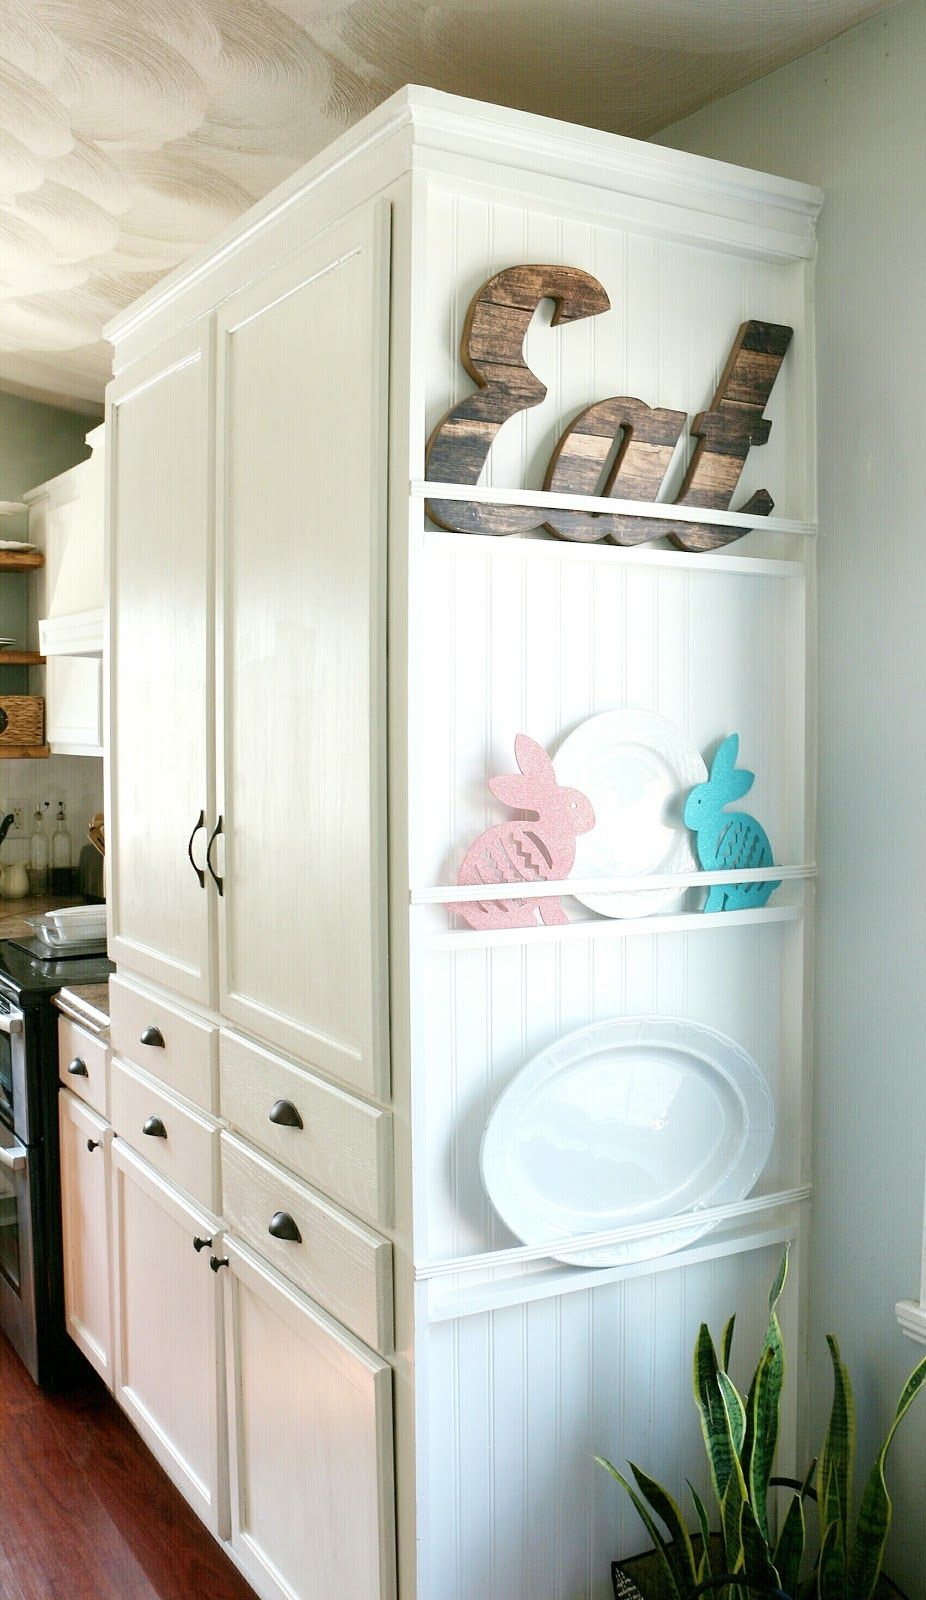 My DIY Kitchen Cabinet Crown Molding, How to Fake the Look Without the Fuss - Kitchen cabinet molding, Kitchen cabinet crown molding, Kitchen design diy, Cabinet molding, Diy kitchen decor, Kitchen diy makeover - How to get the look of cabinet crown molding without cutting tricky corners